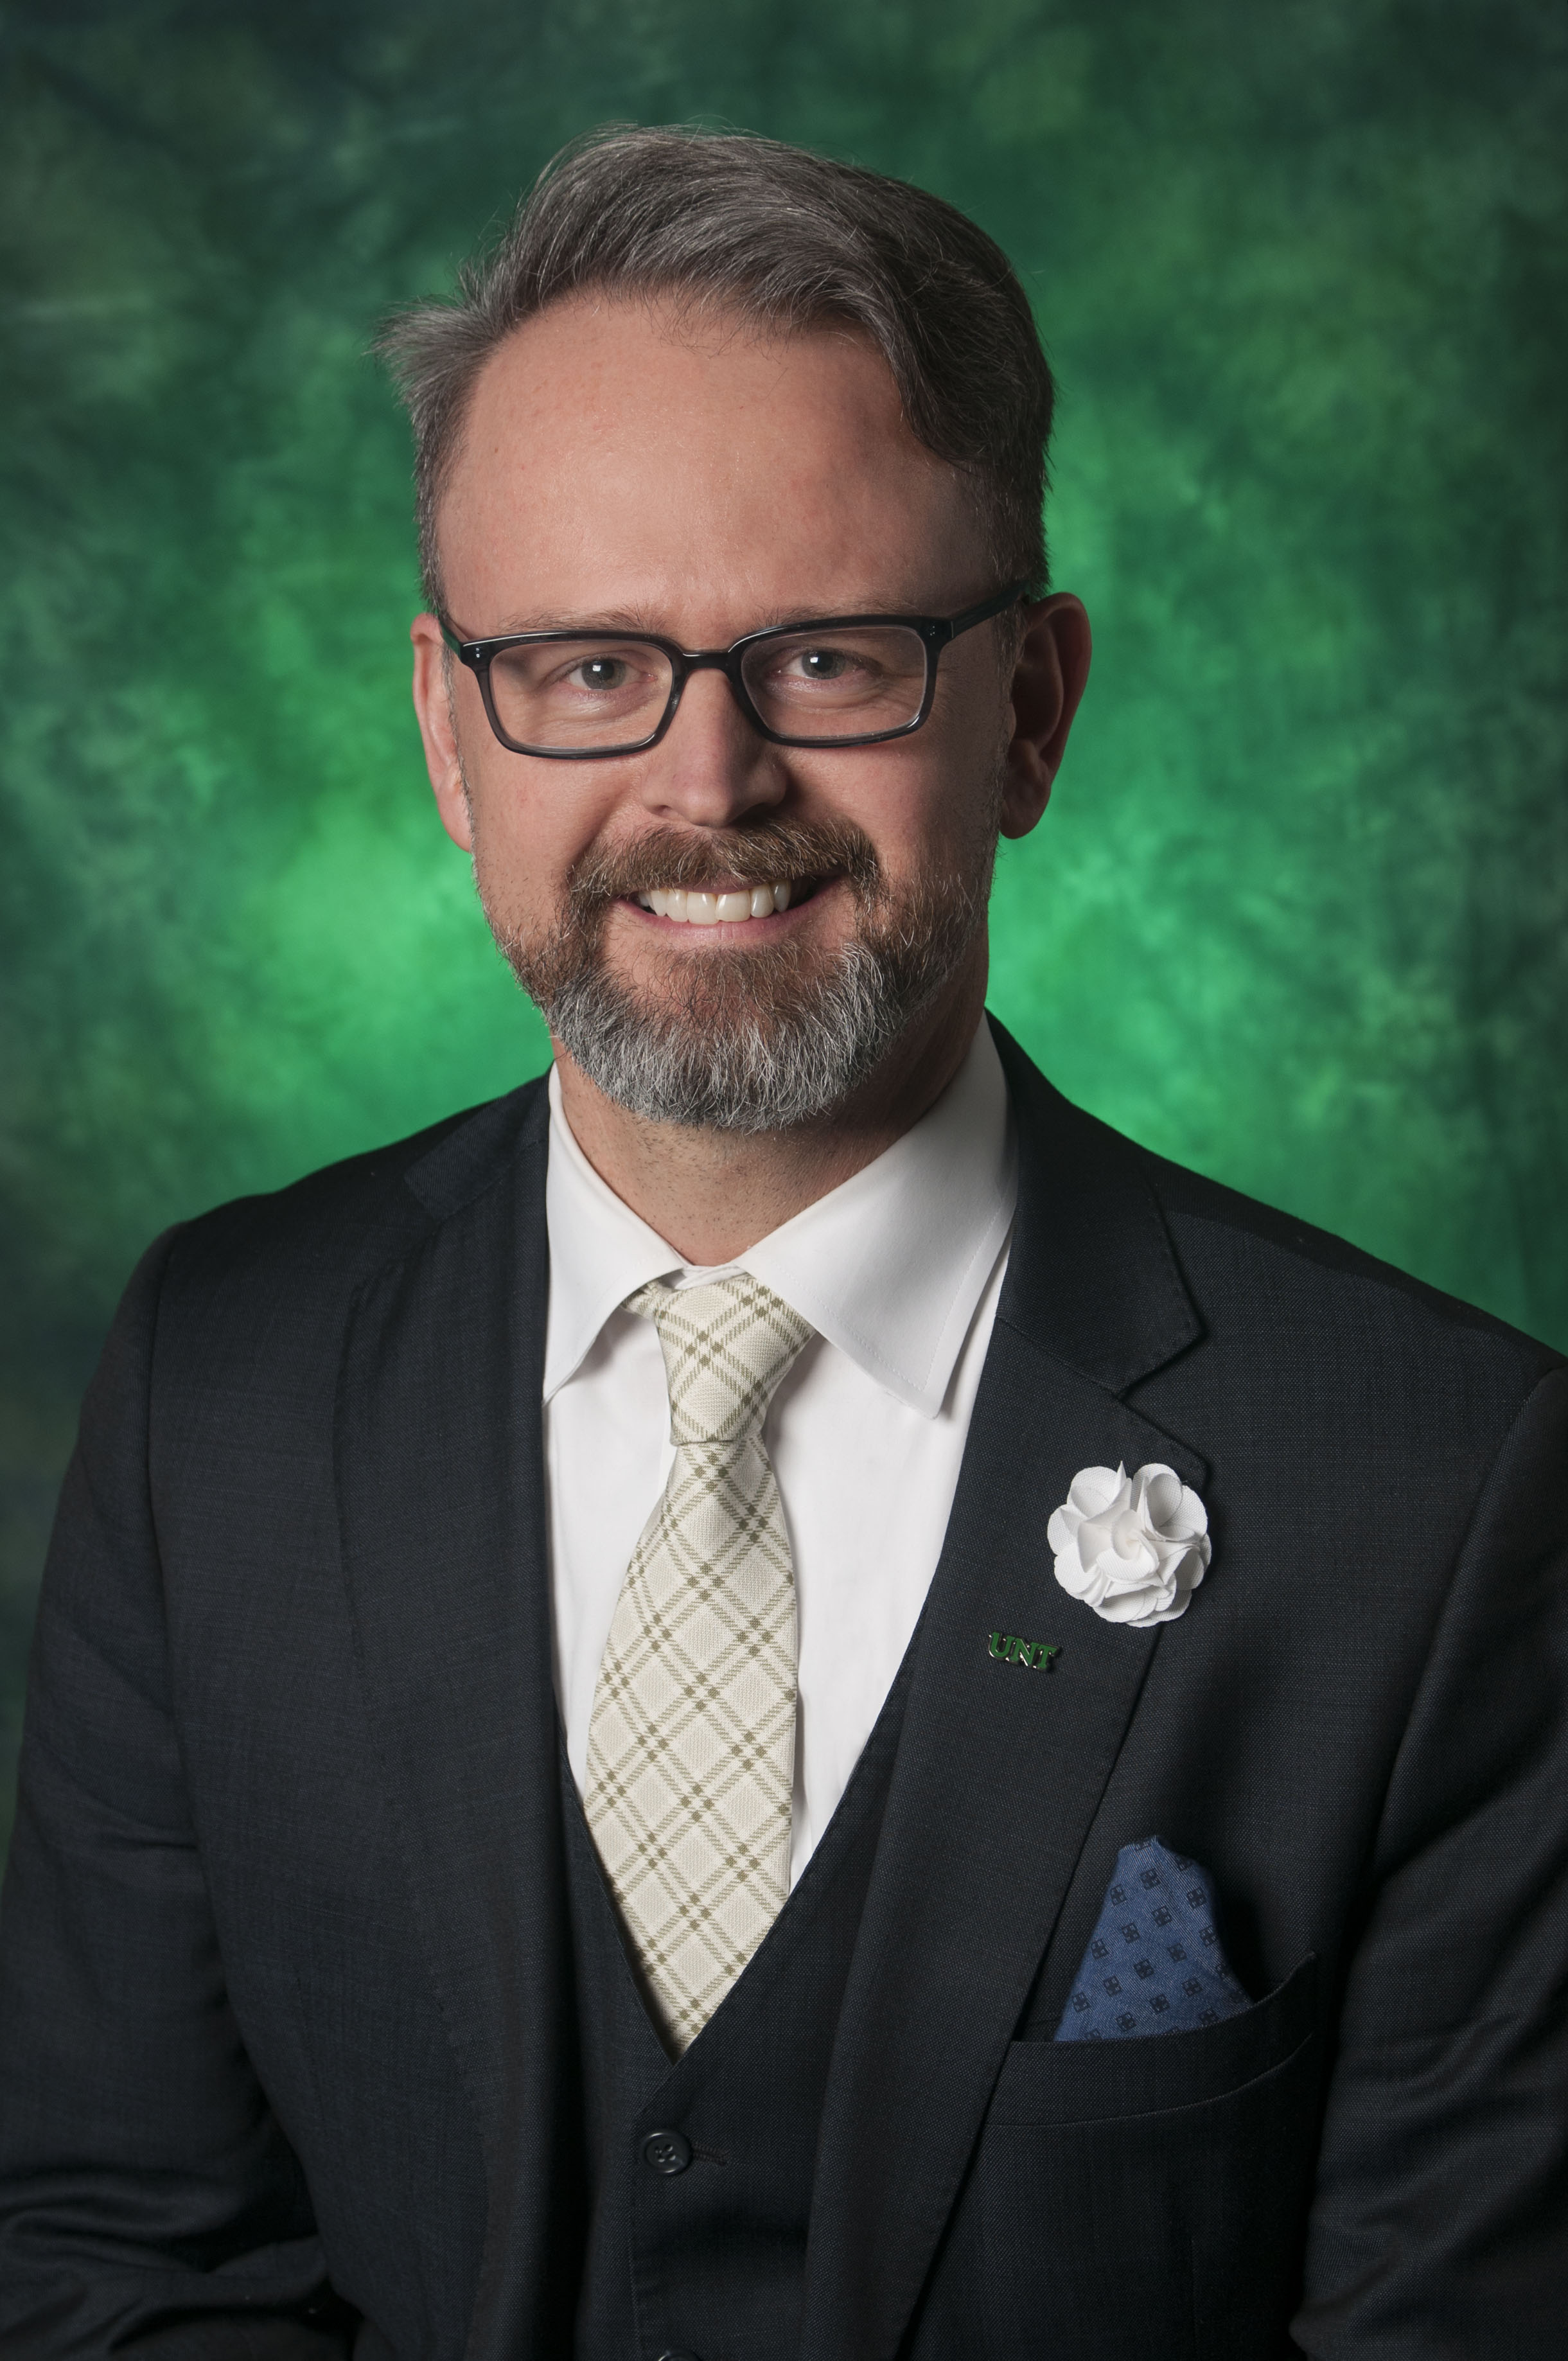 Neale R. Chumbler has been named dean of the University of North Texas College of Health and Public Service. His appointment is effective July 1, 2018.